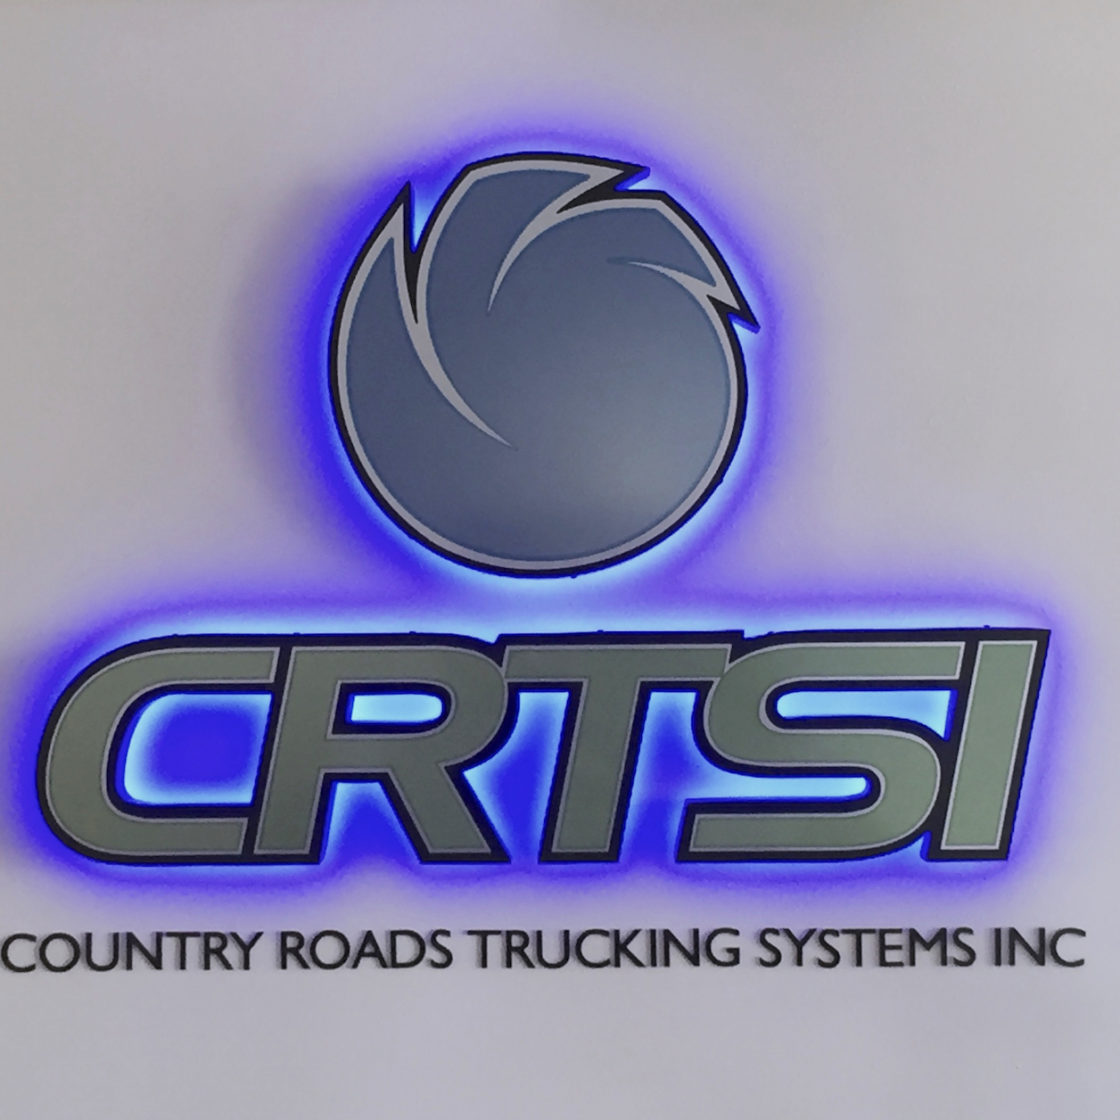 Country Roads Trucking Systems Inc Black Lit Sign Cabinet